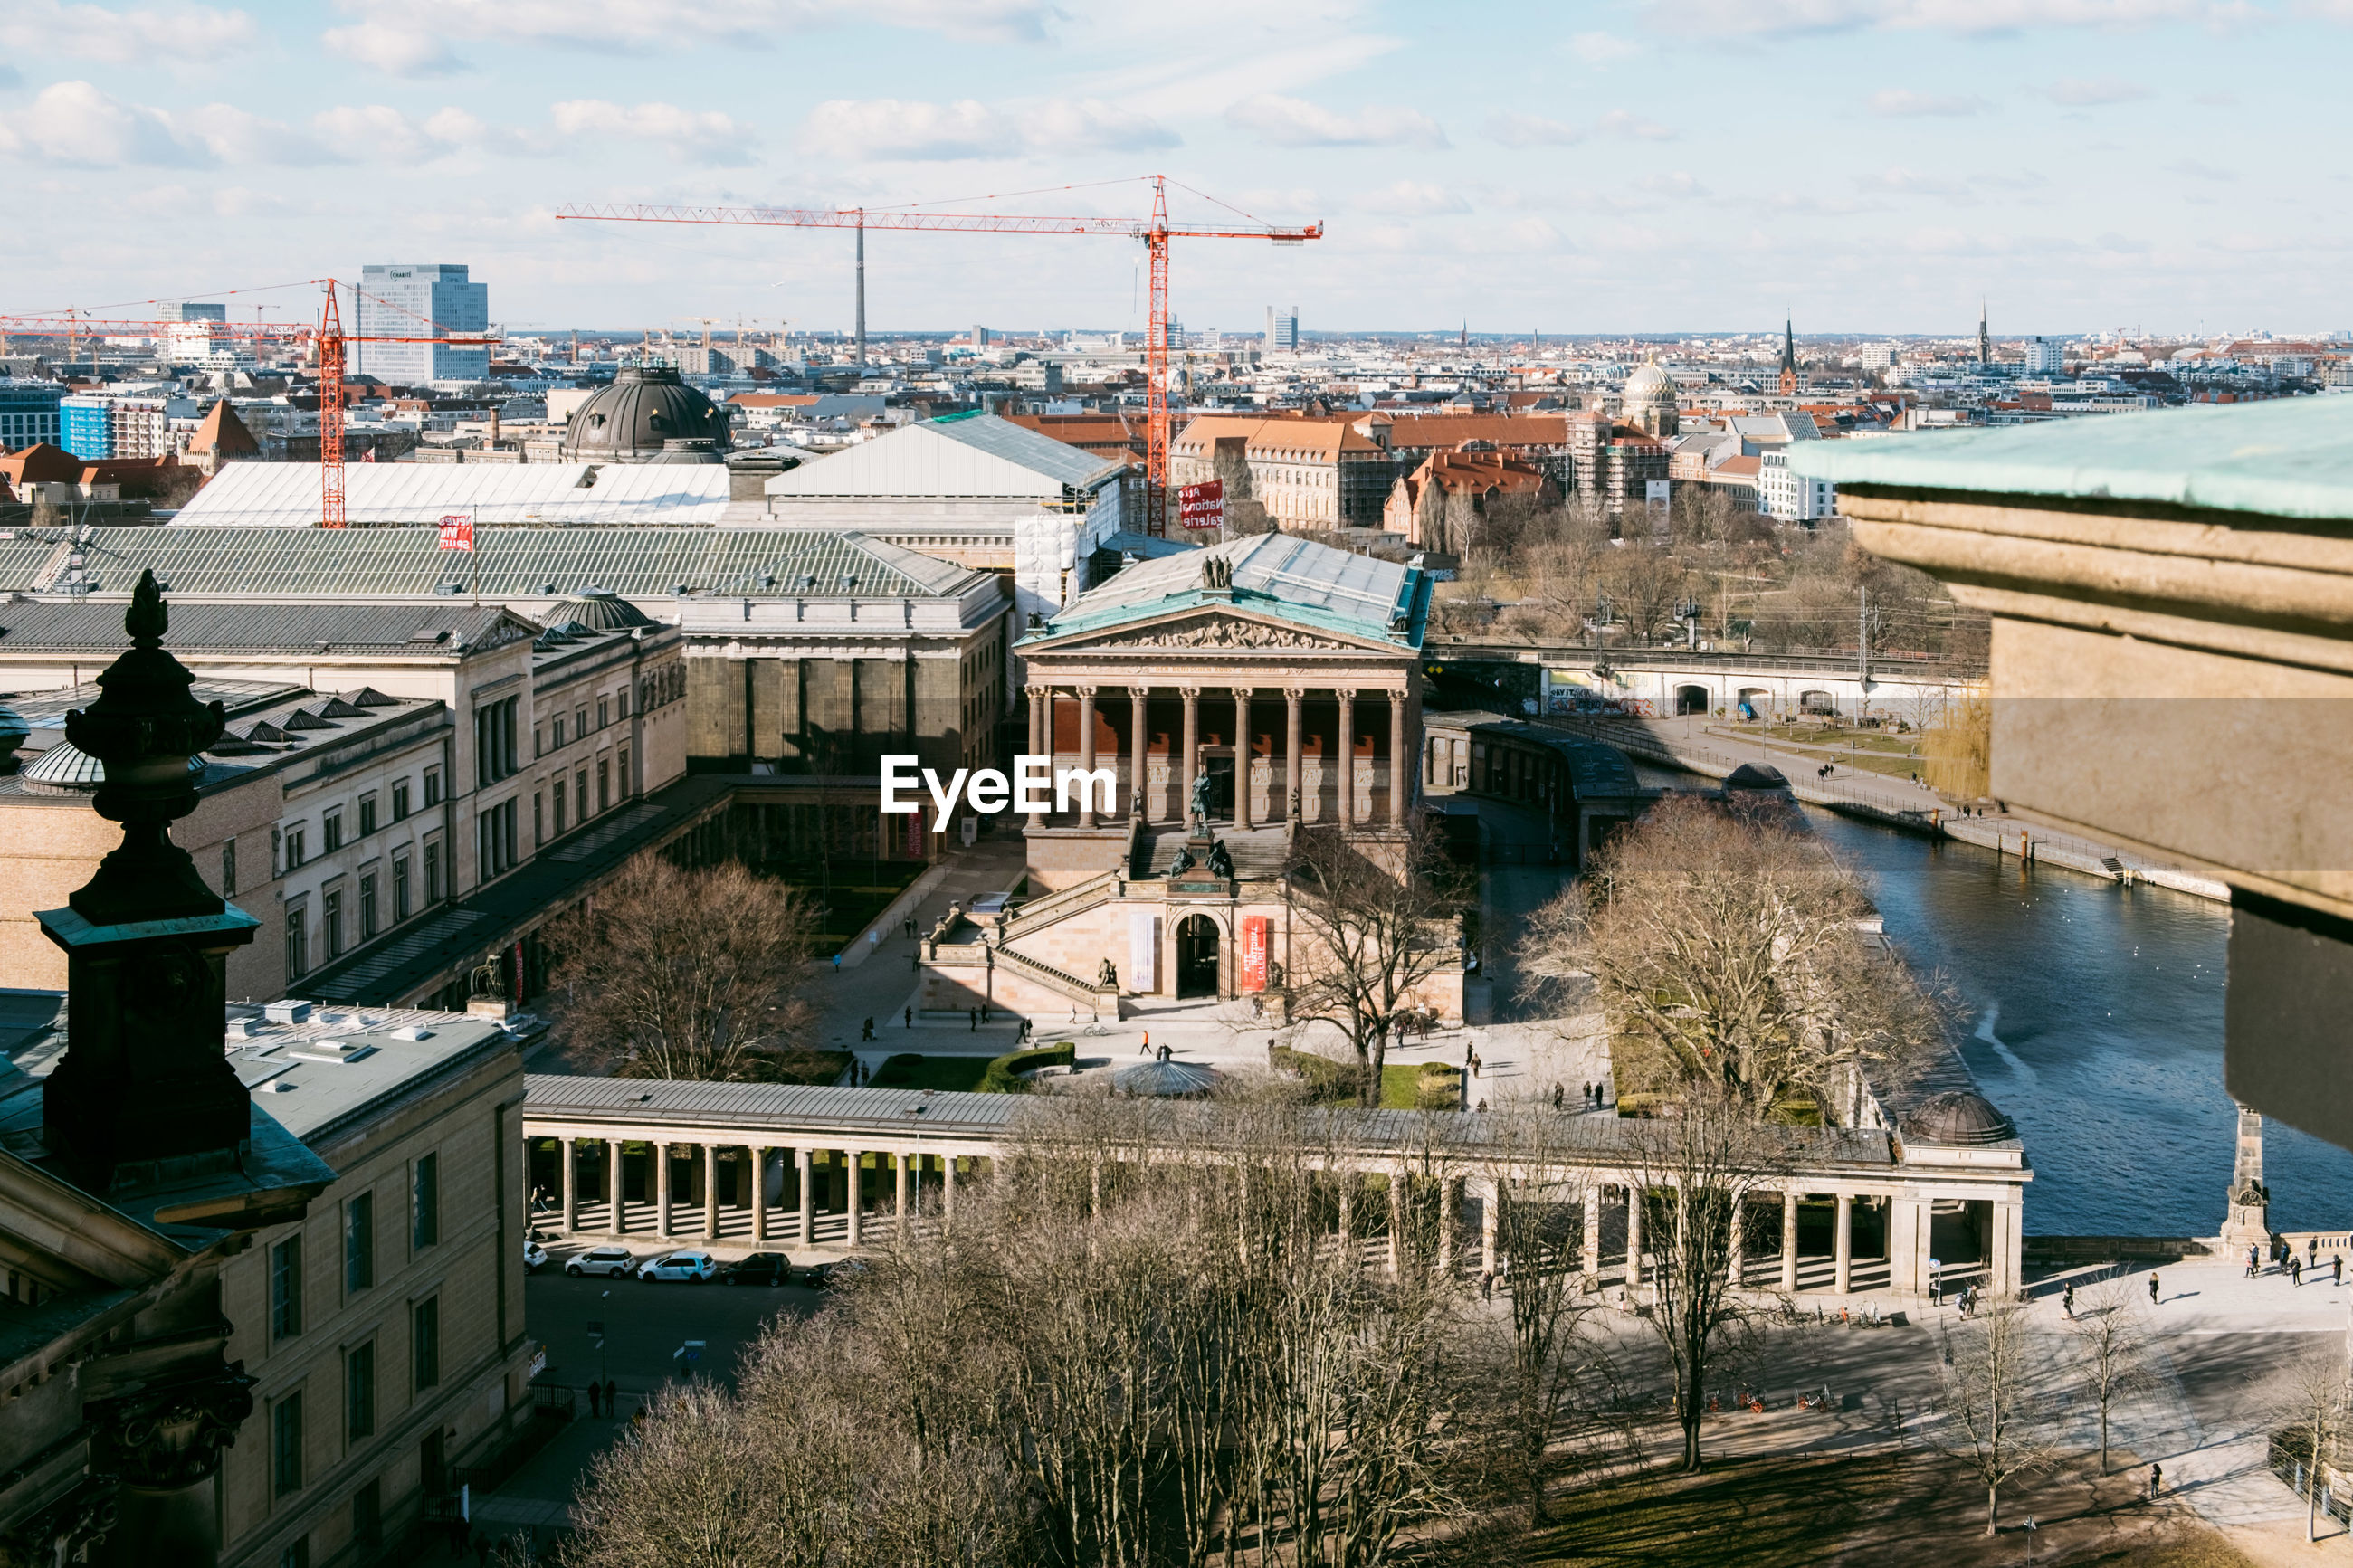 HIGH ANGLE VIEW OF BRIDGE OVER RIVER BY BUILDINGS IN CITY